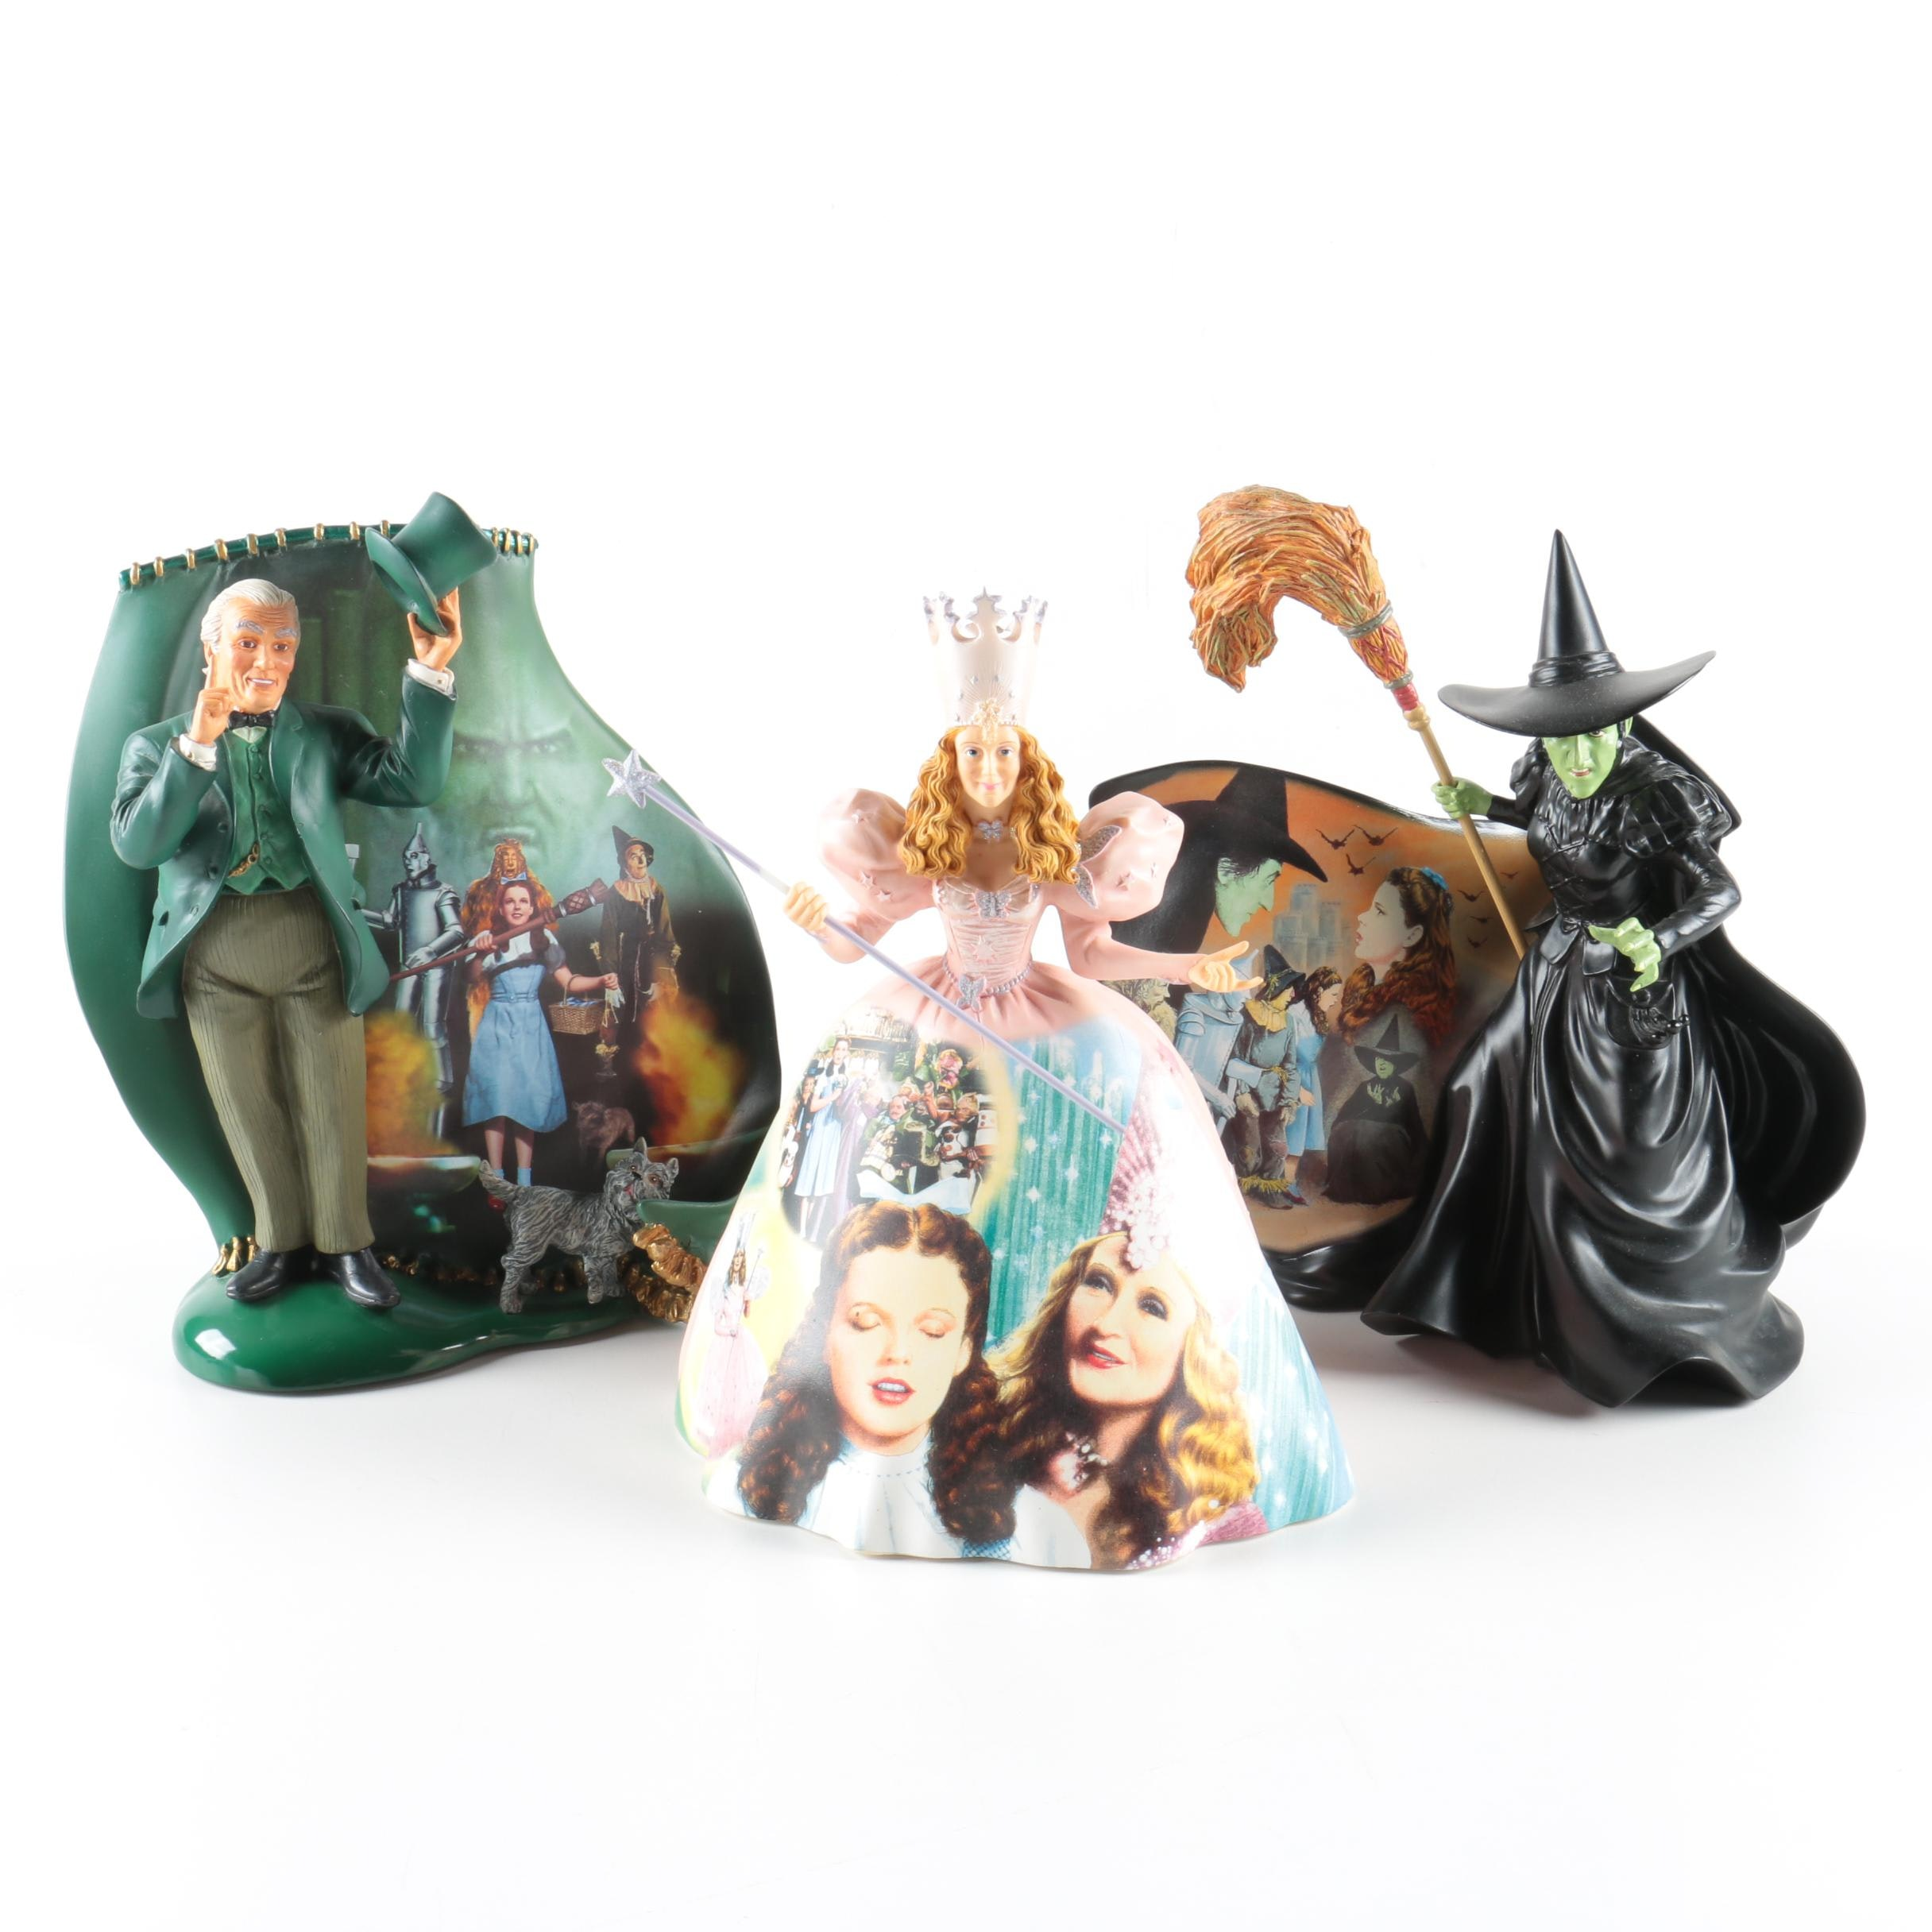 Limited Edition Bradford Exchange Resin Wizard of Oz Figurines